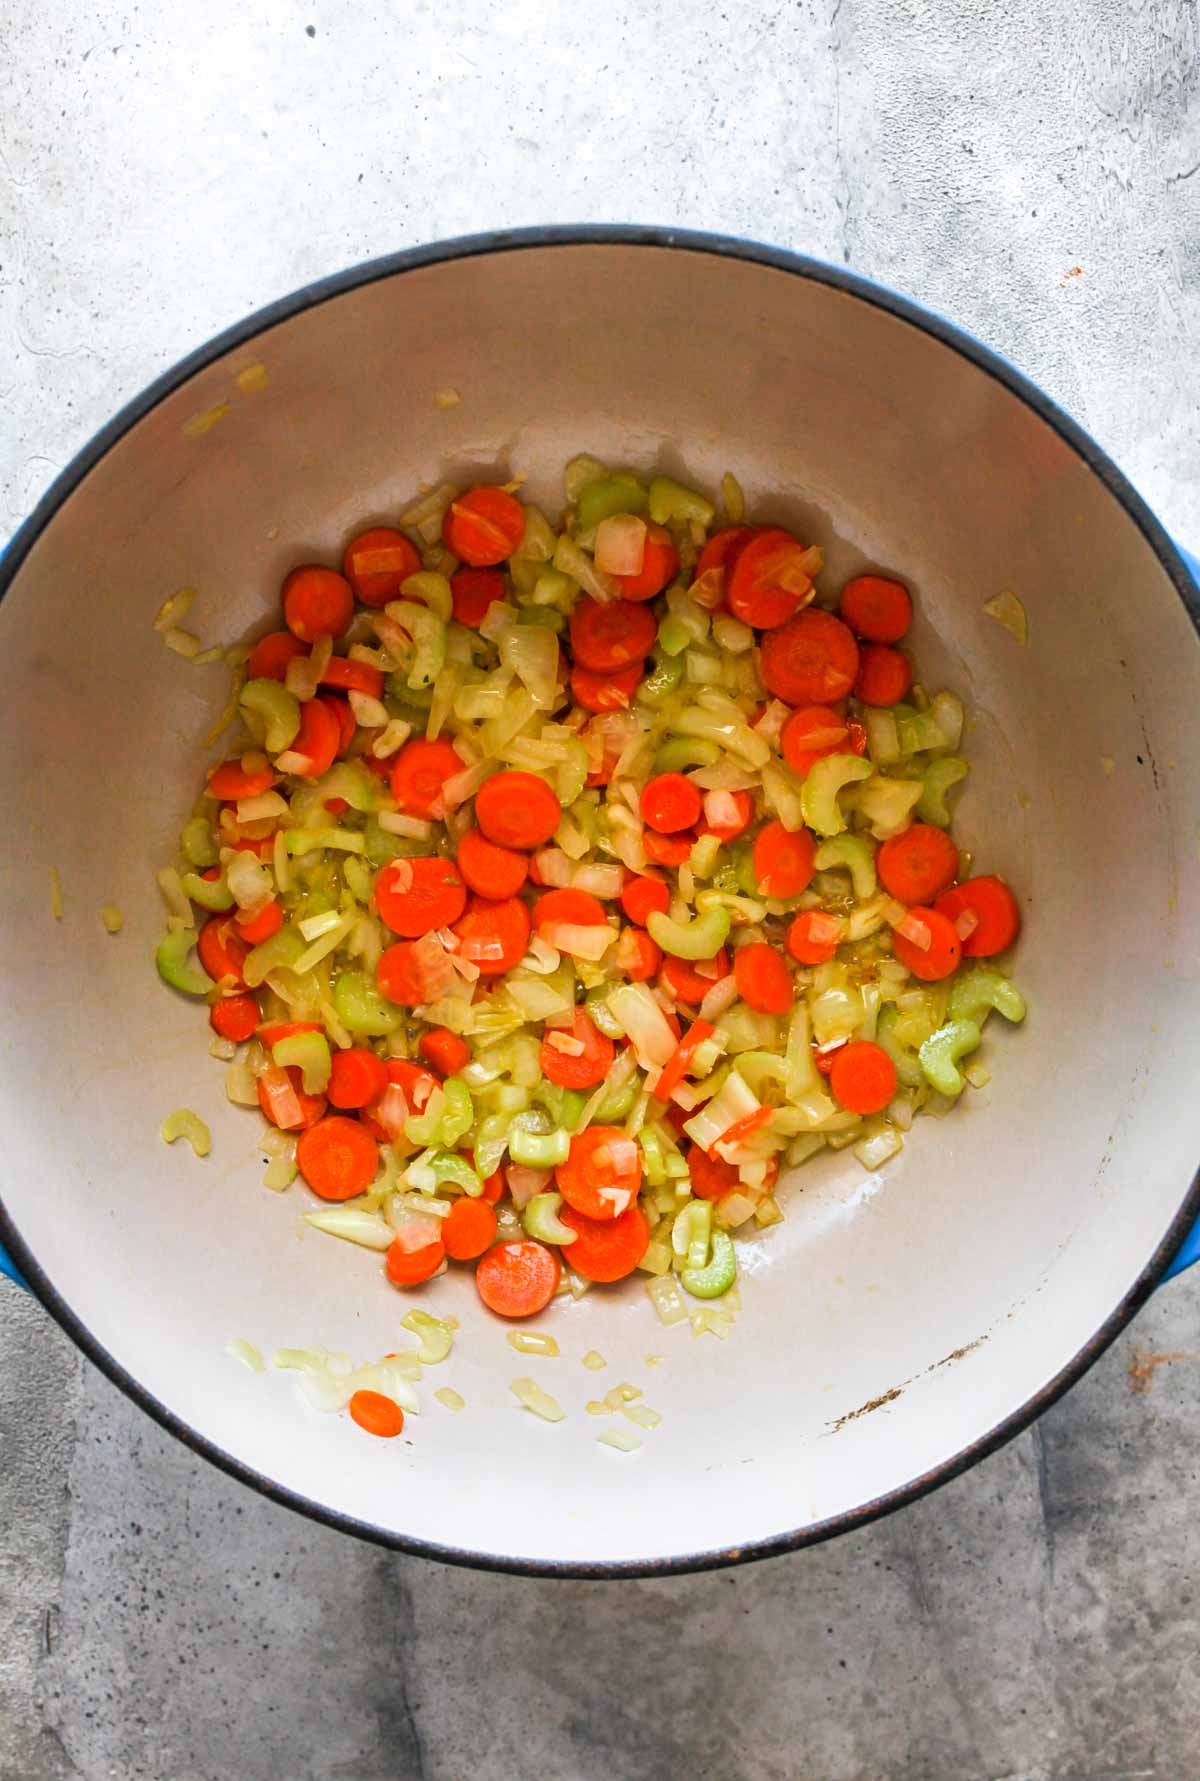 Onion, carrots, and celery sauting in olive oil in a Dutch oven